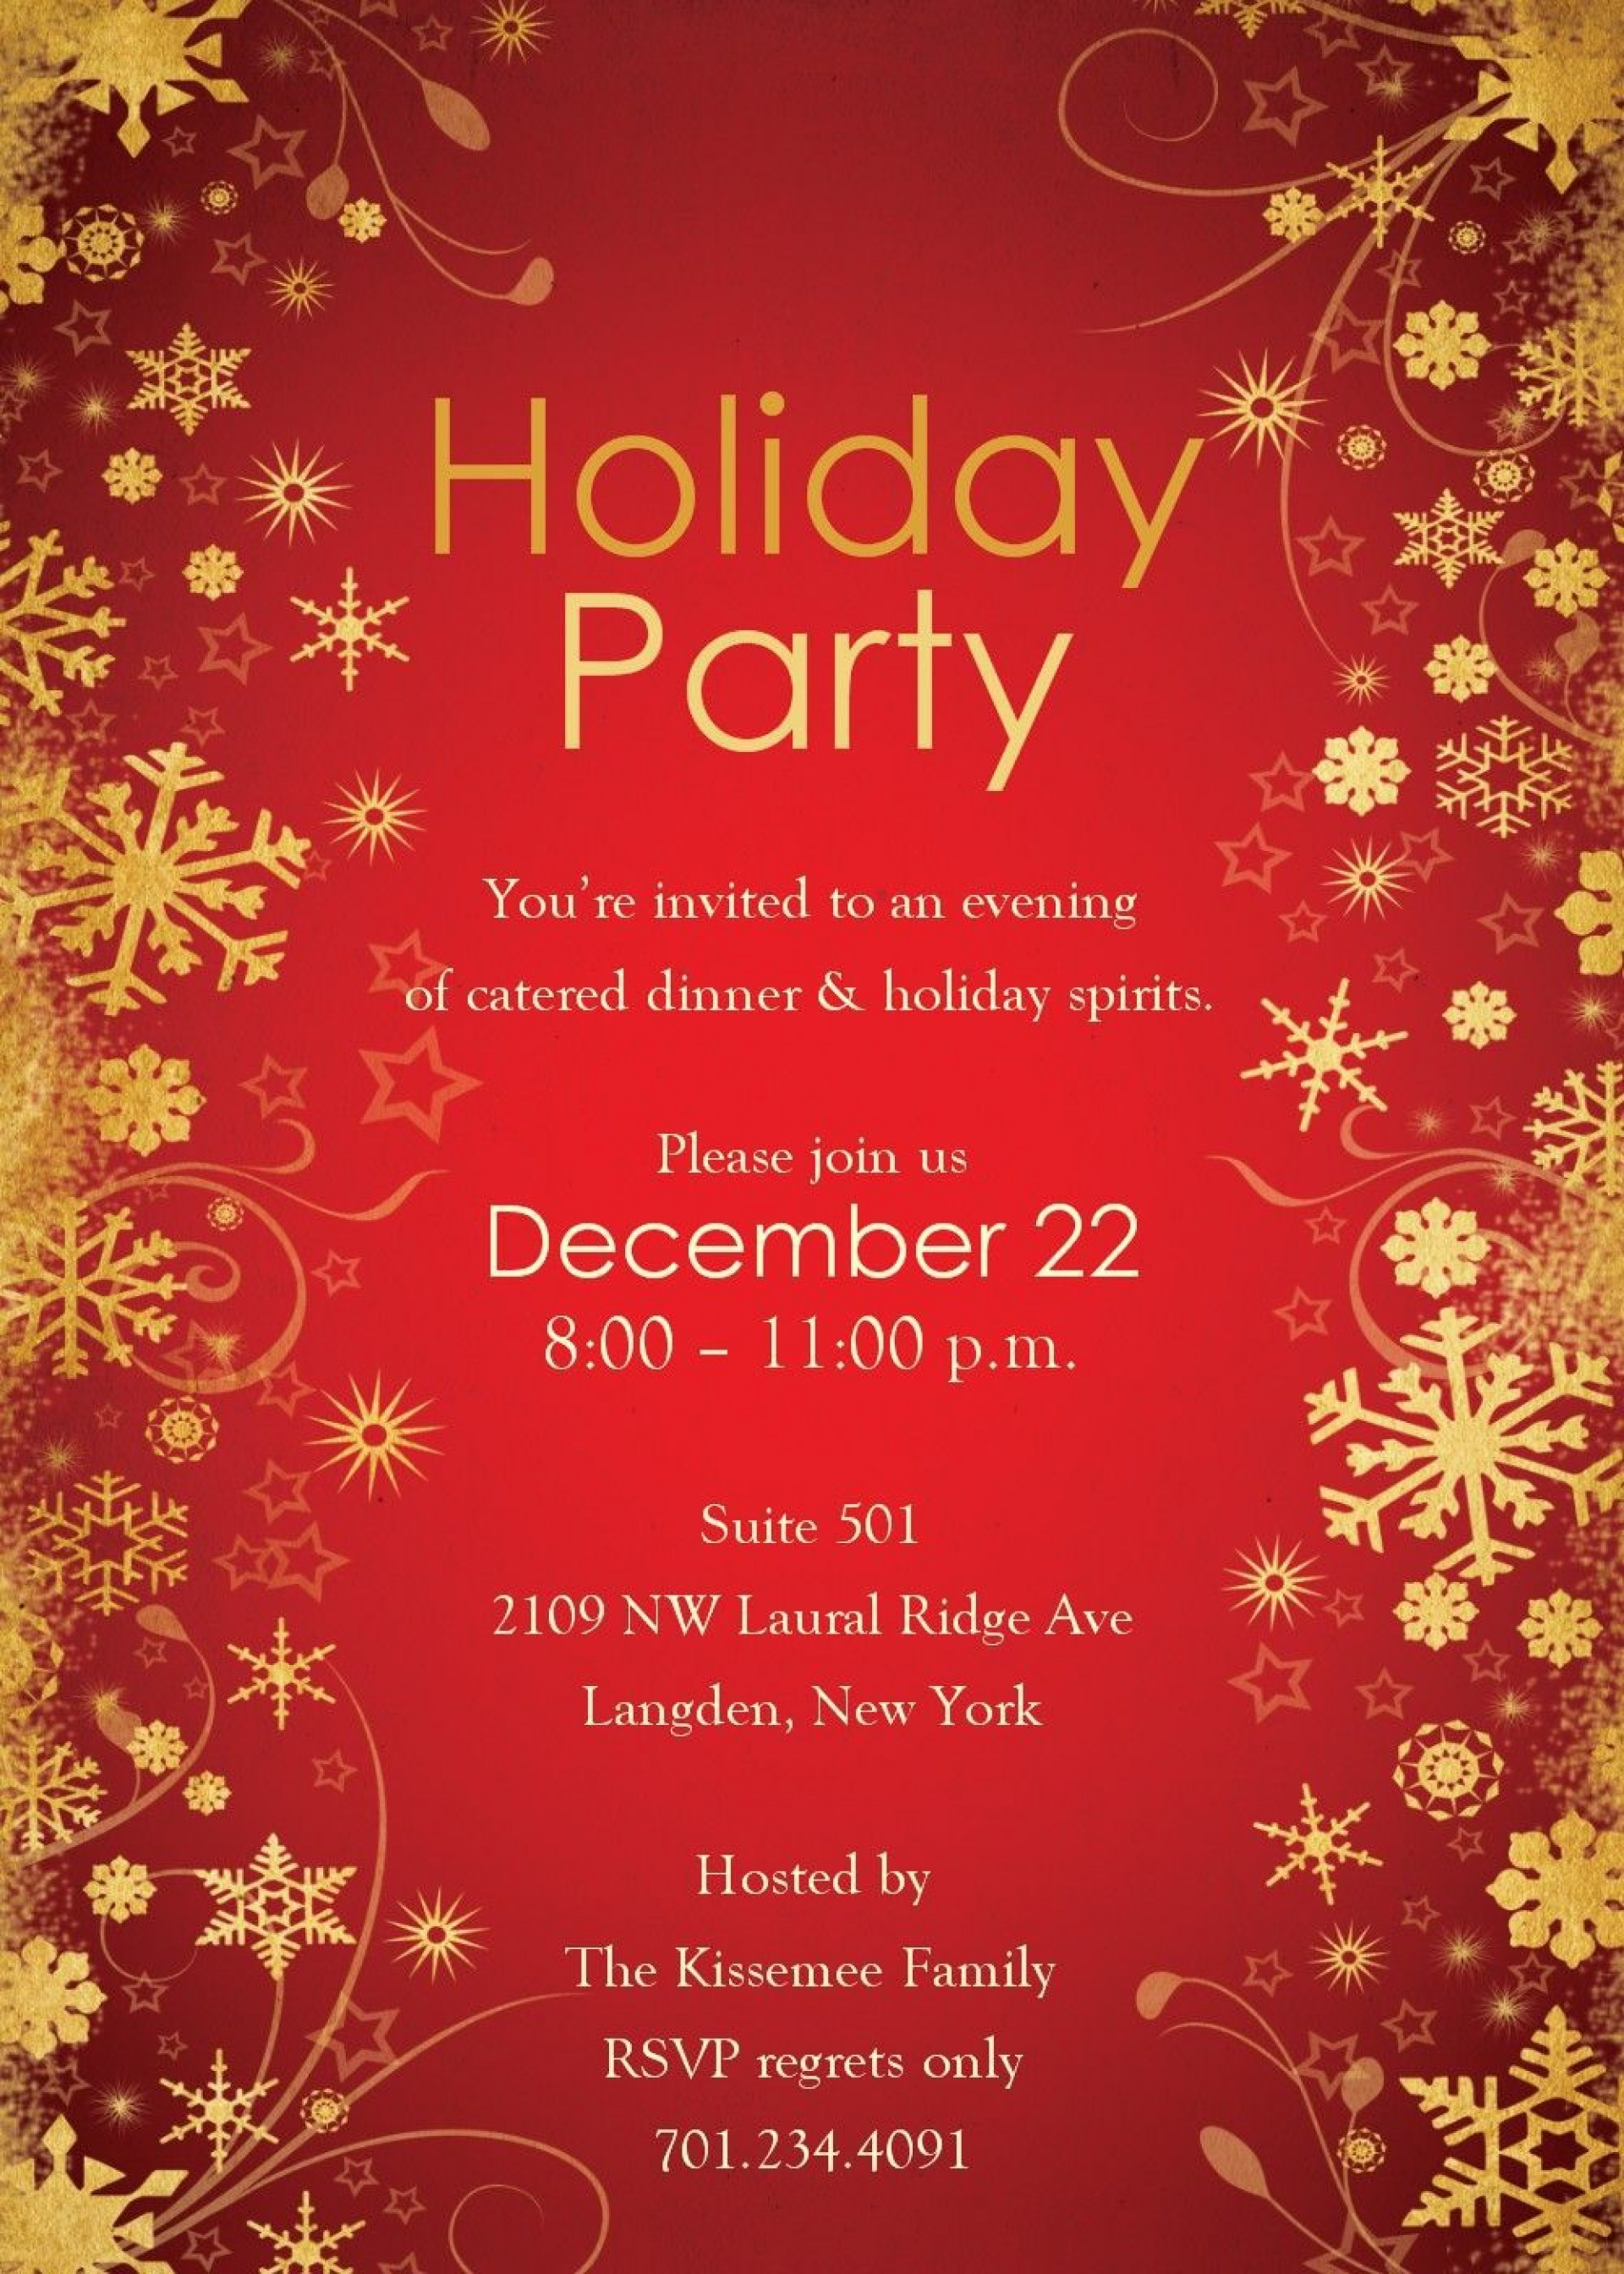 005 Impressive Free Holiday Invite Template Picture  Templates Party Ticket For Email1920